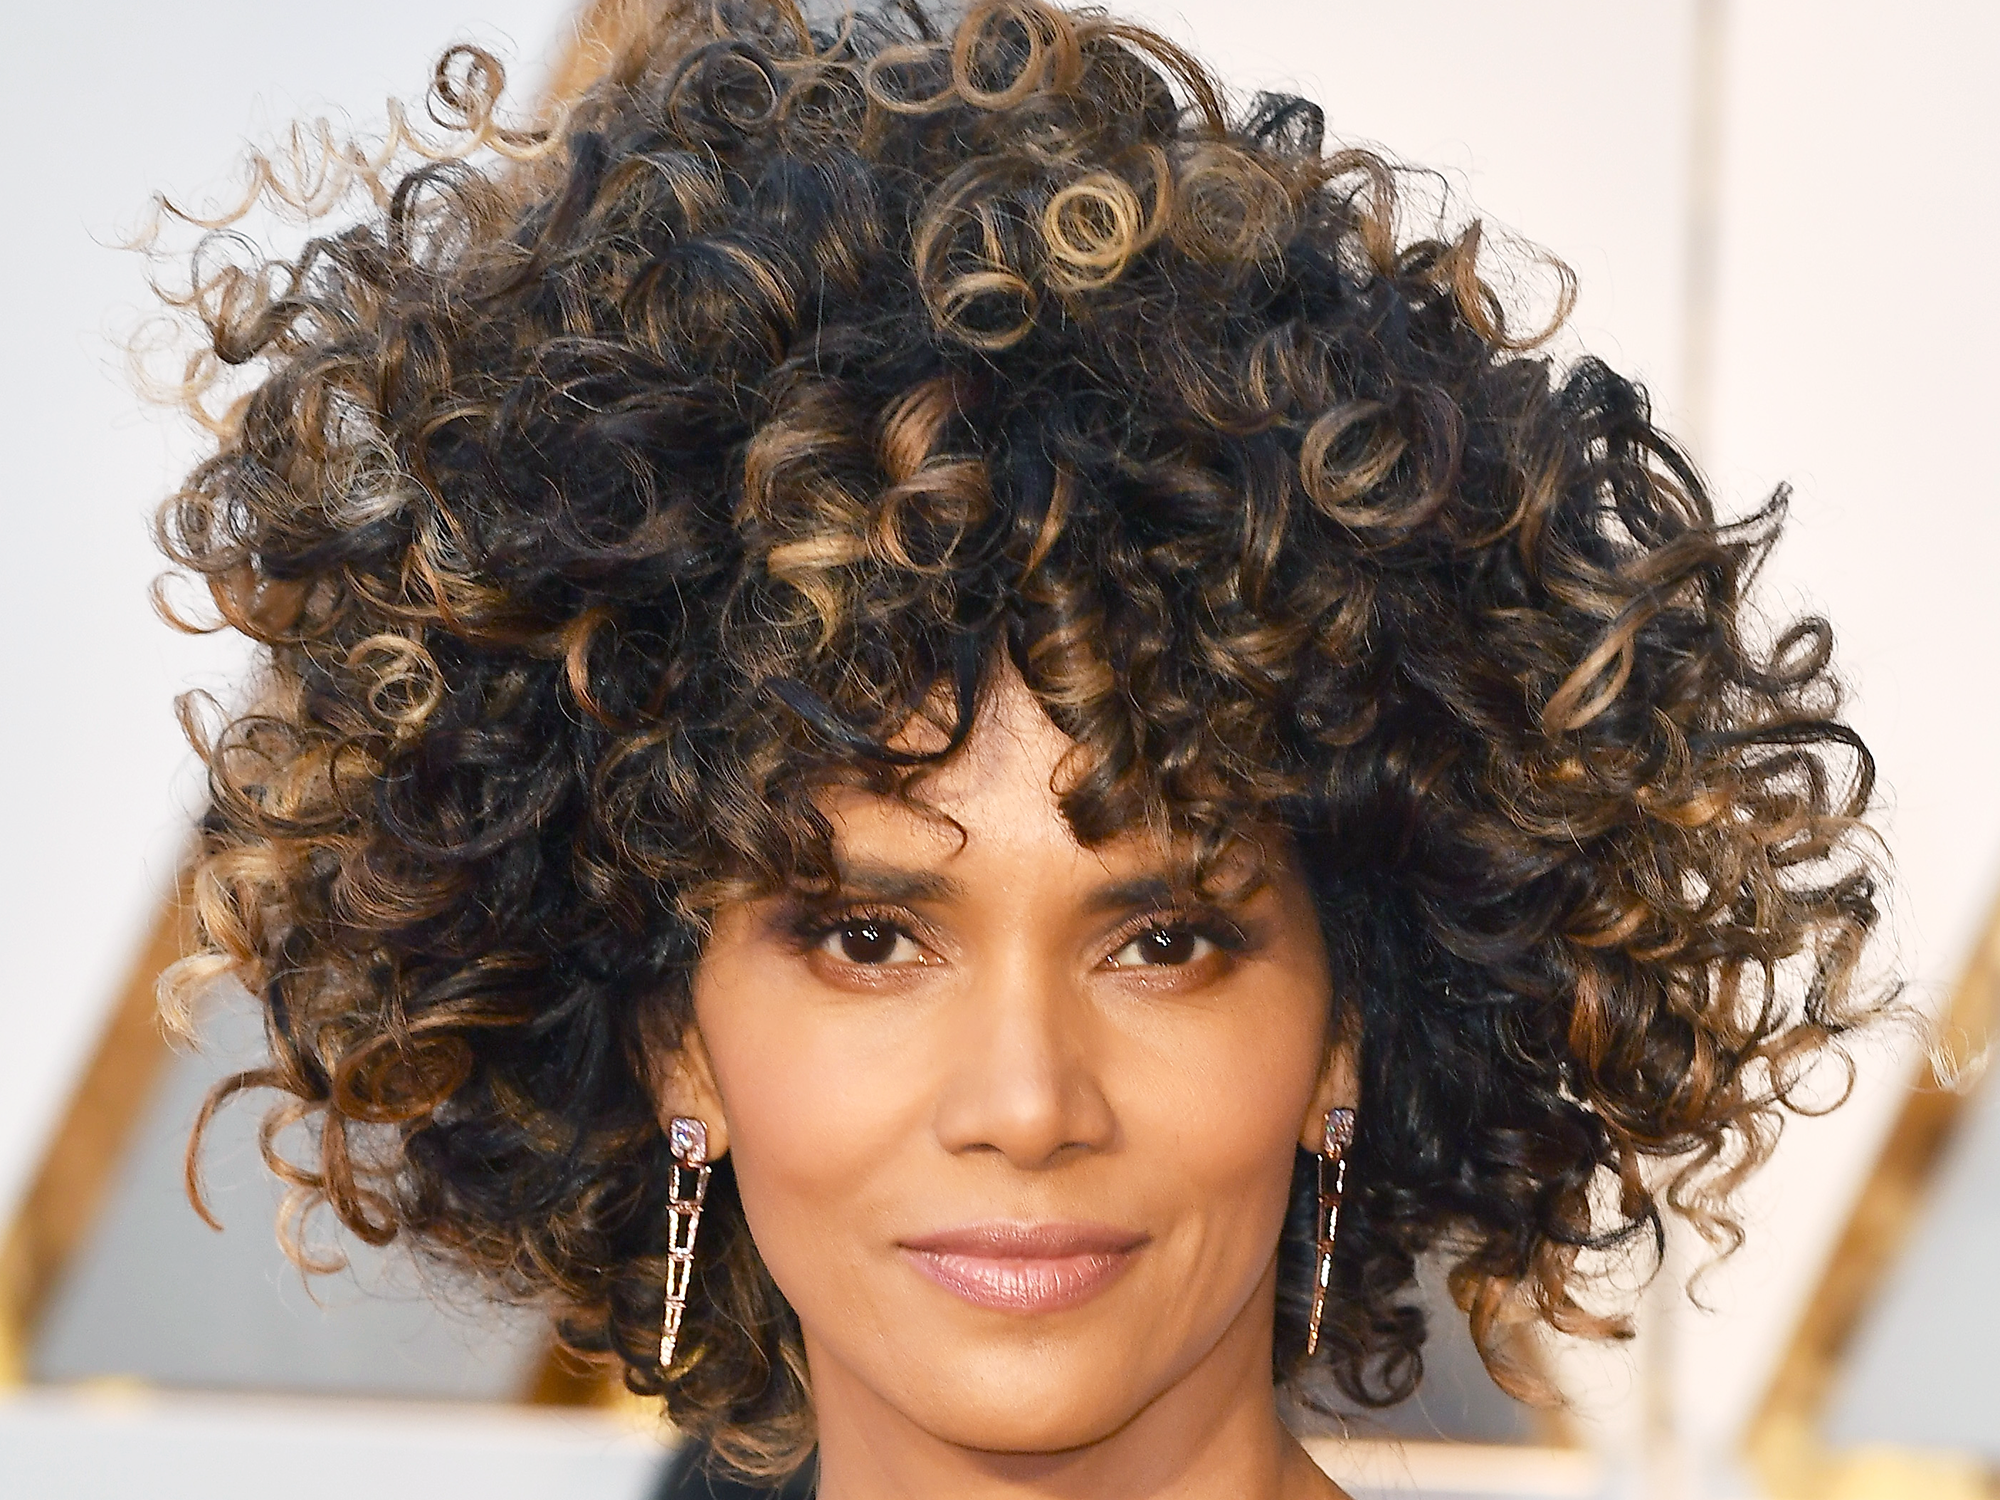 Halle Berry Oscars Red Carpet Natural Hairstyle Photos